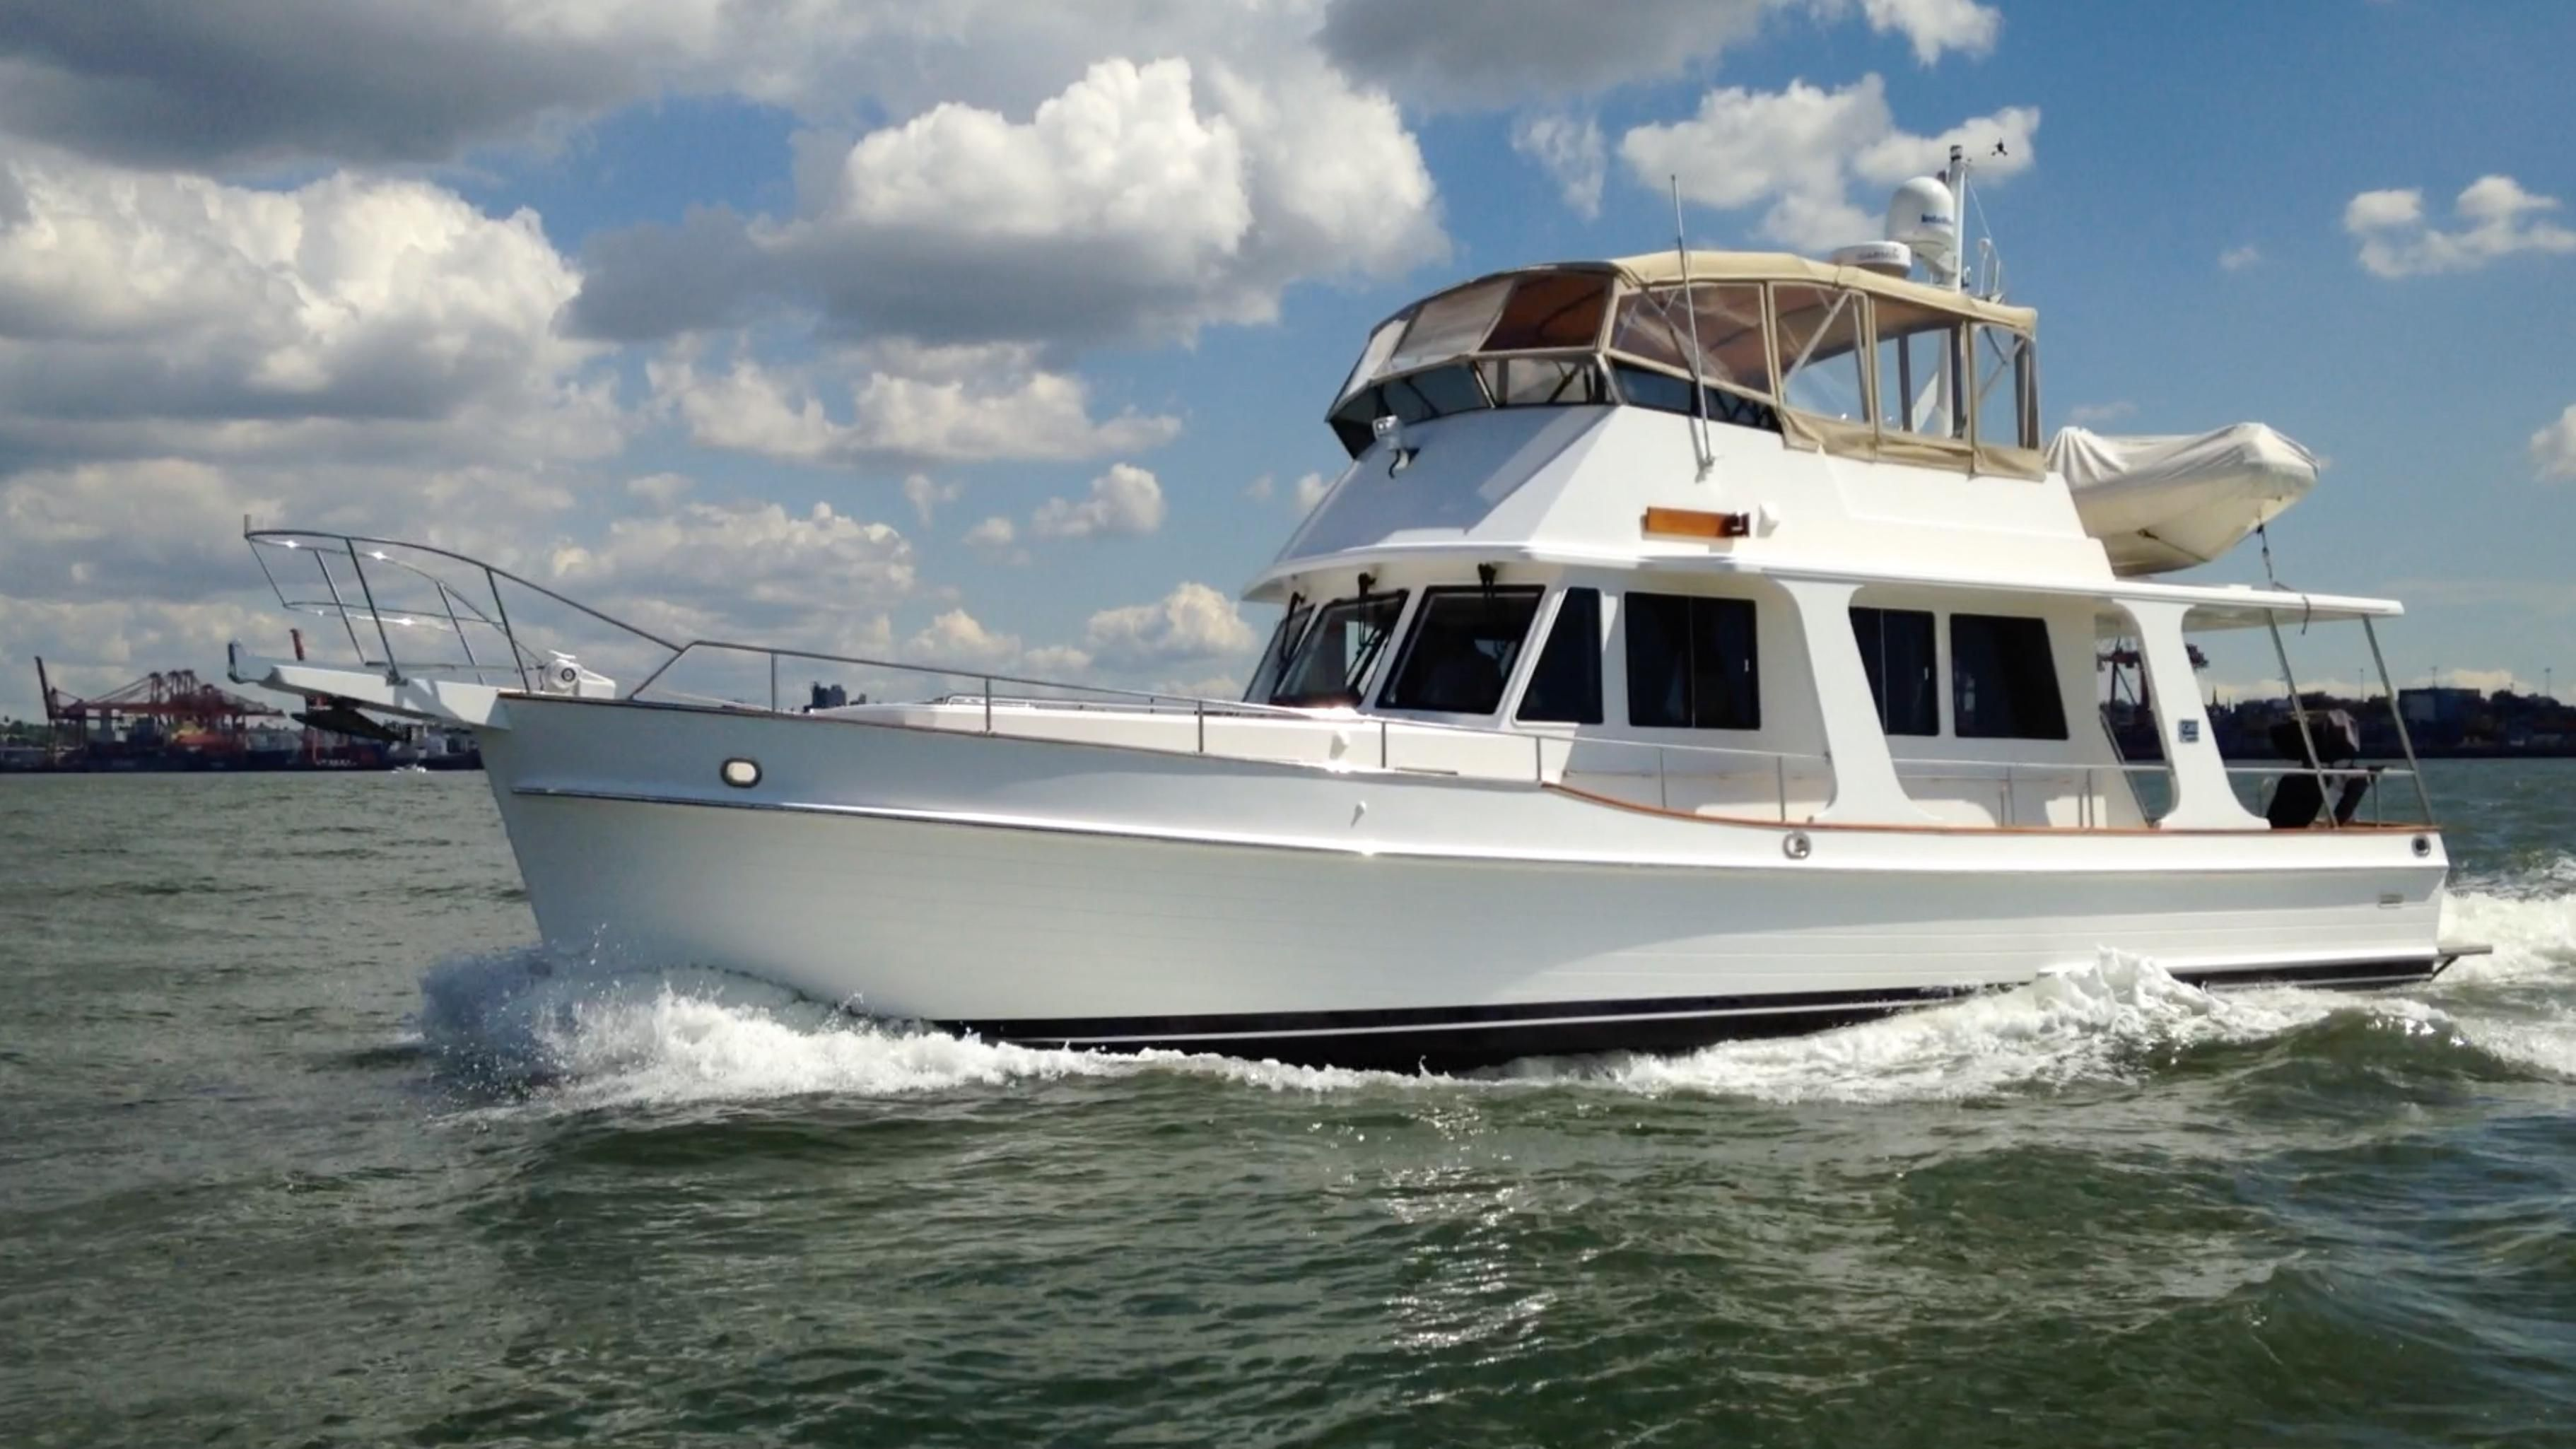 2010 Grand Banks 47 Heritage Europa Power Boat For Sale Www Yachtworld Com